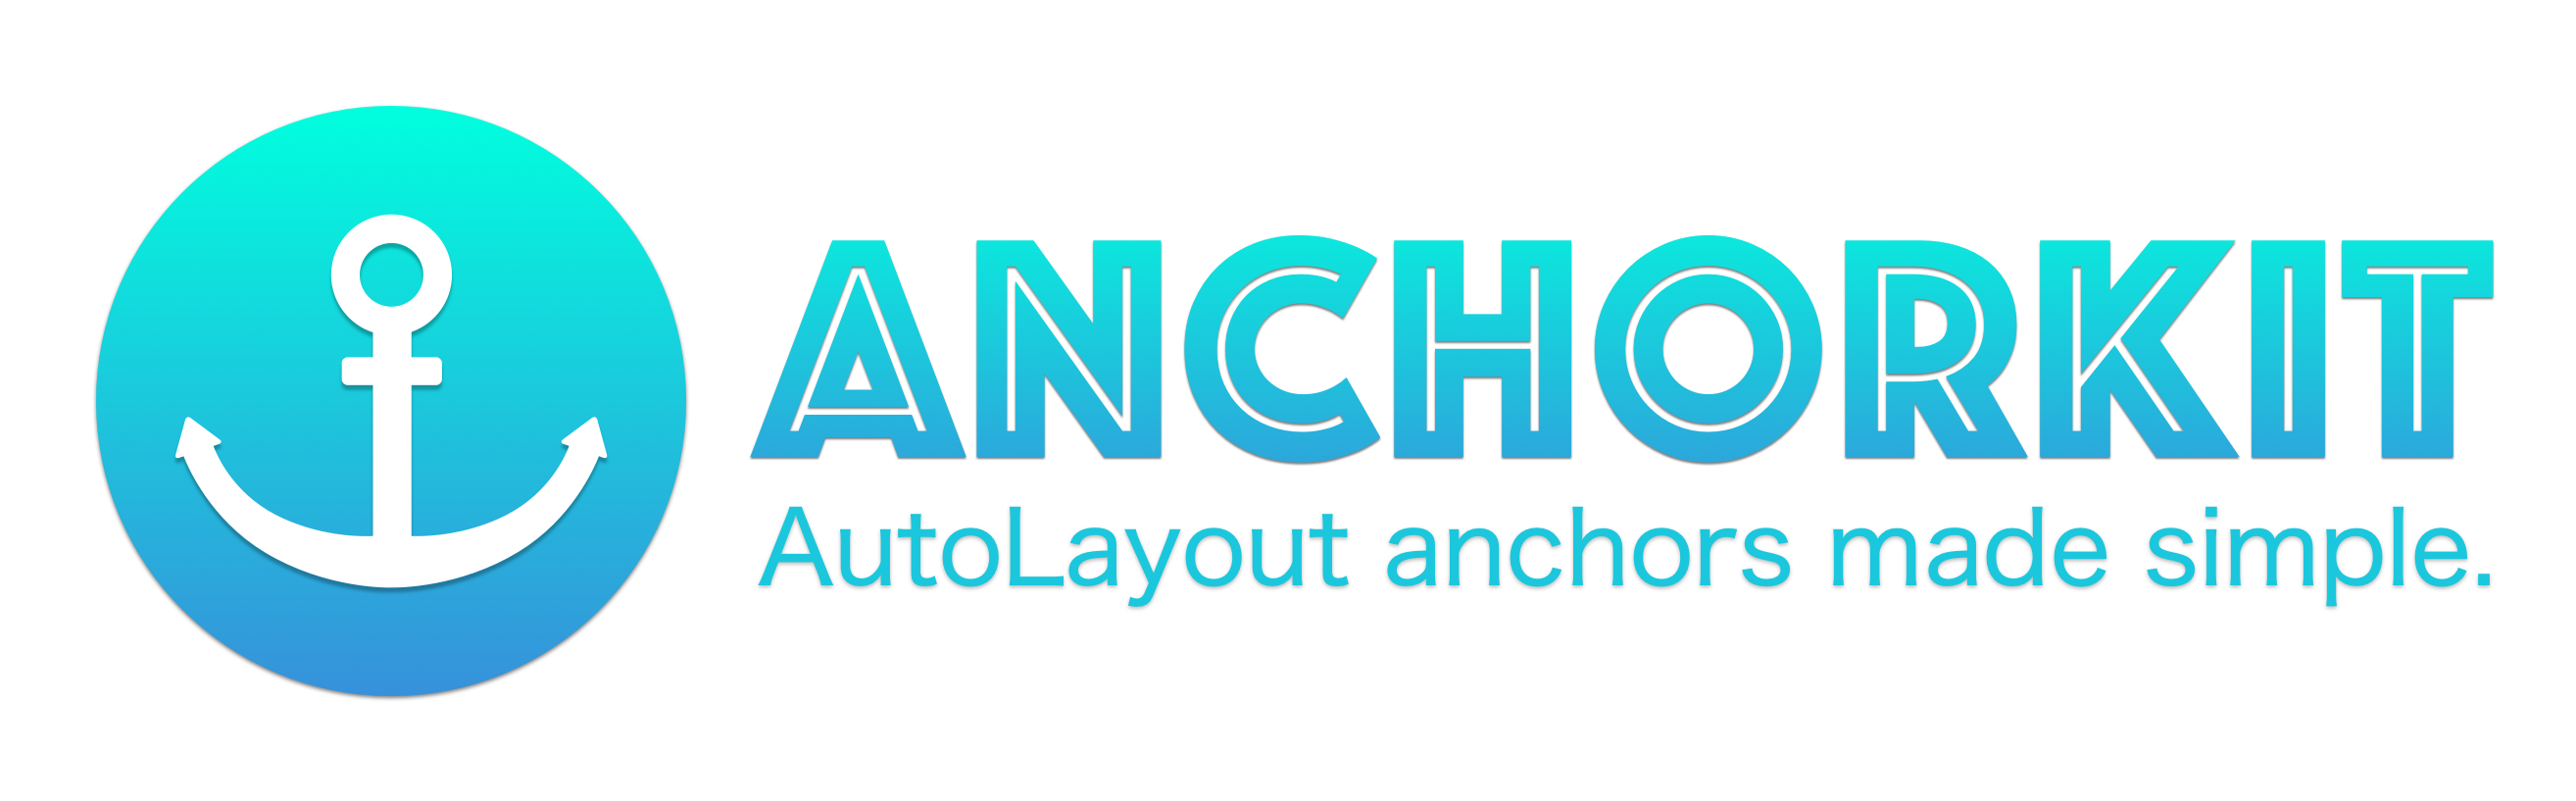 AnchorKit